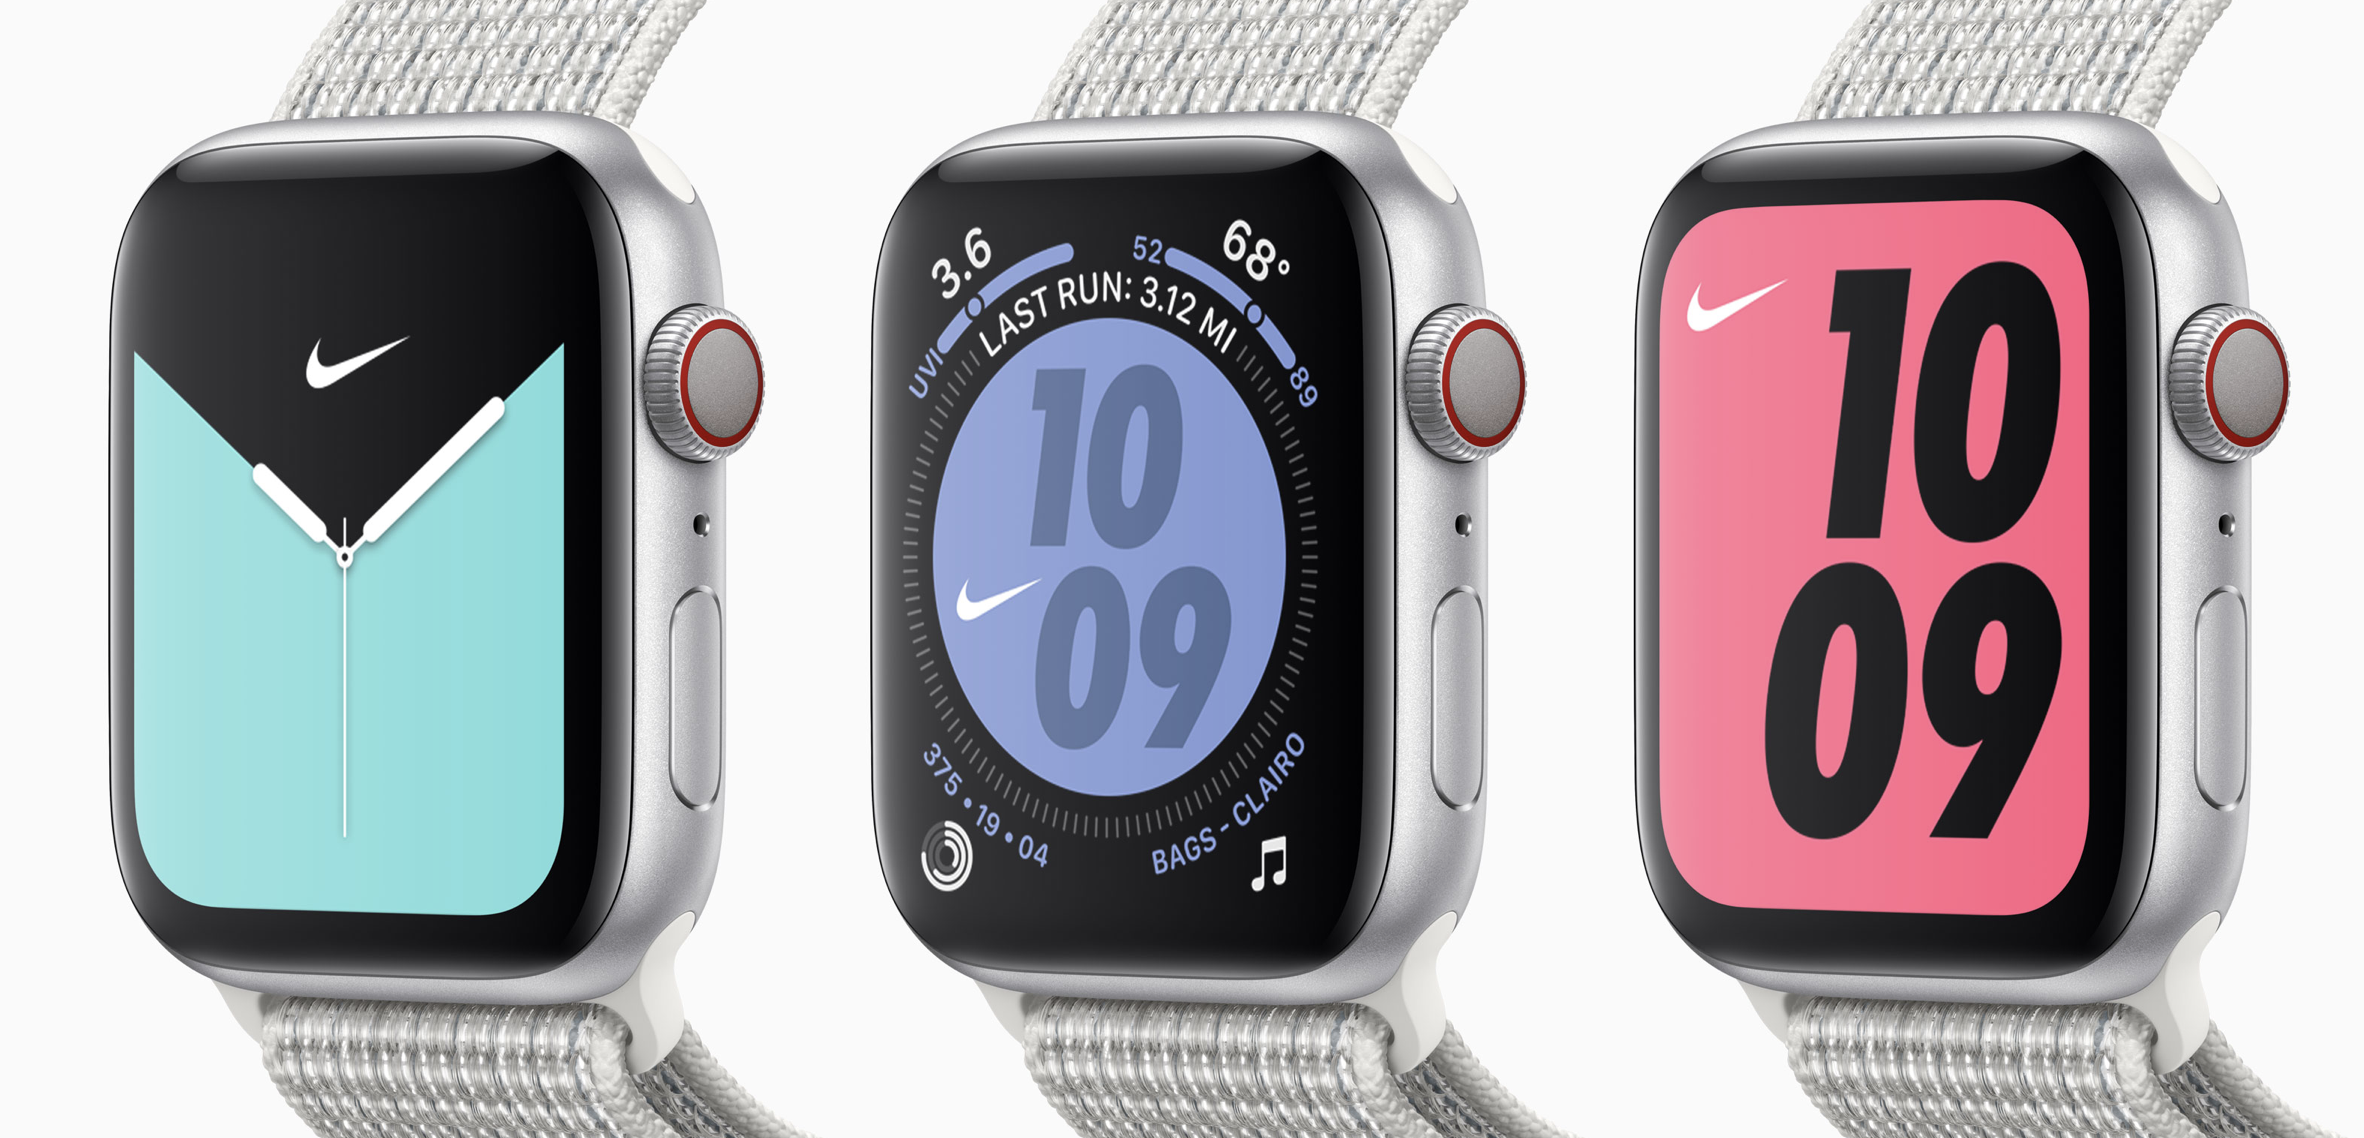 Apple Watch Nike+ watch faces